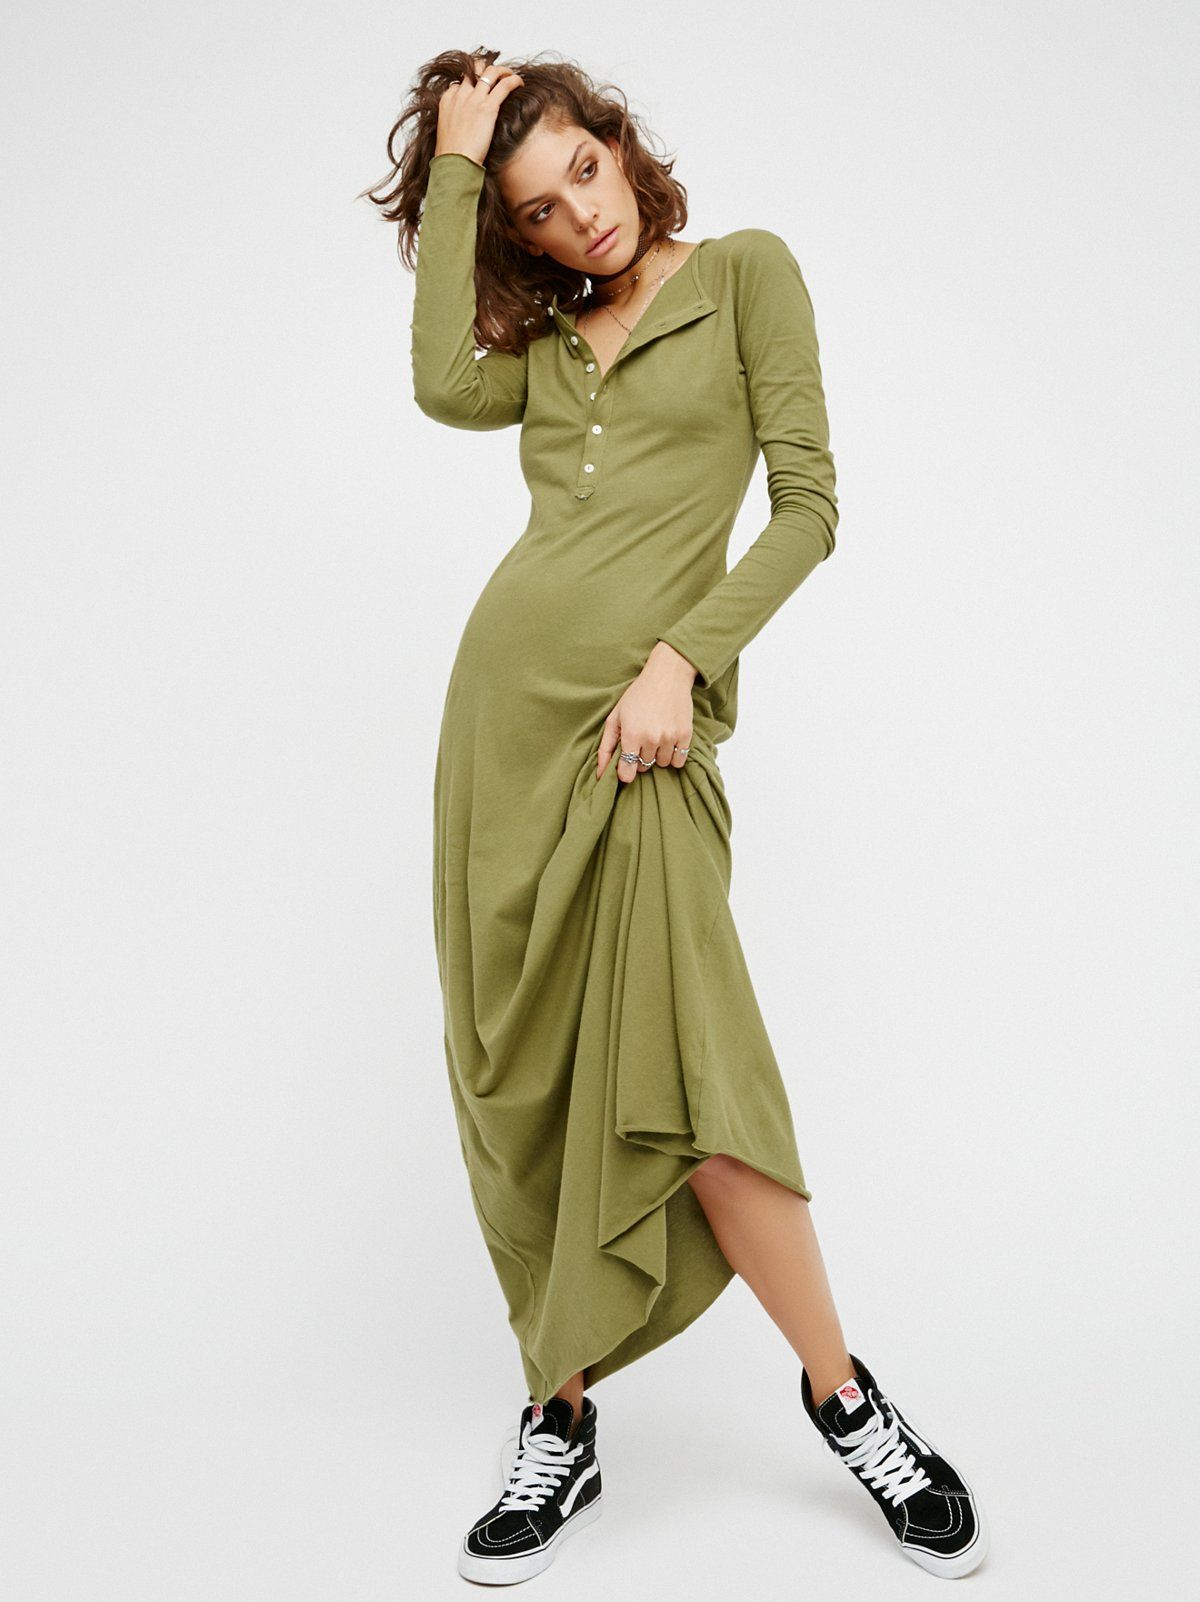 El topo dress pinterest henleys free people and clothing boutiques